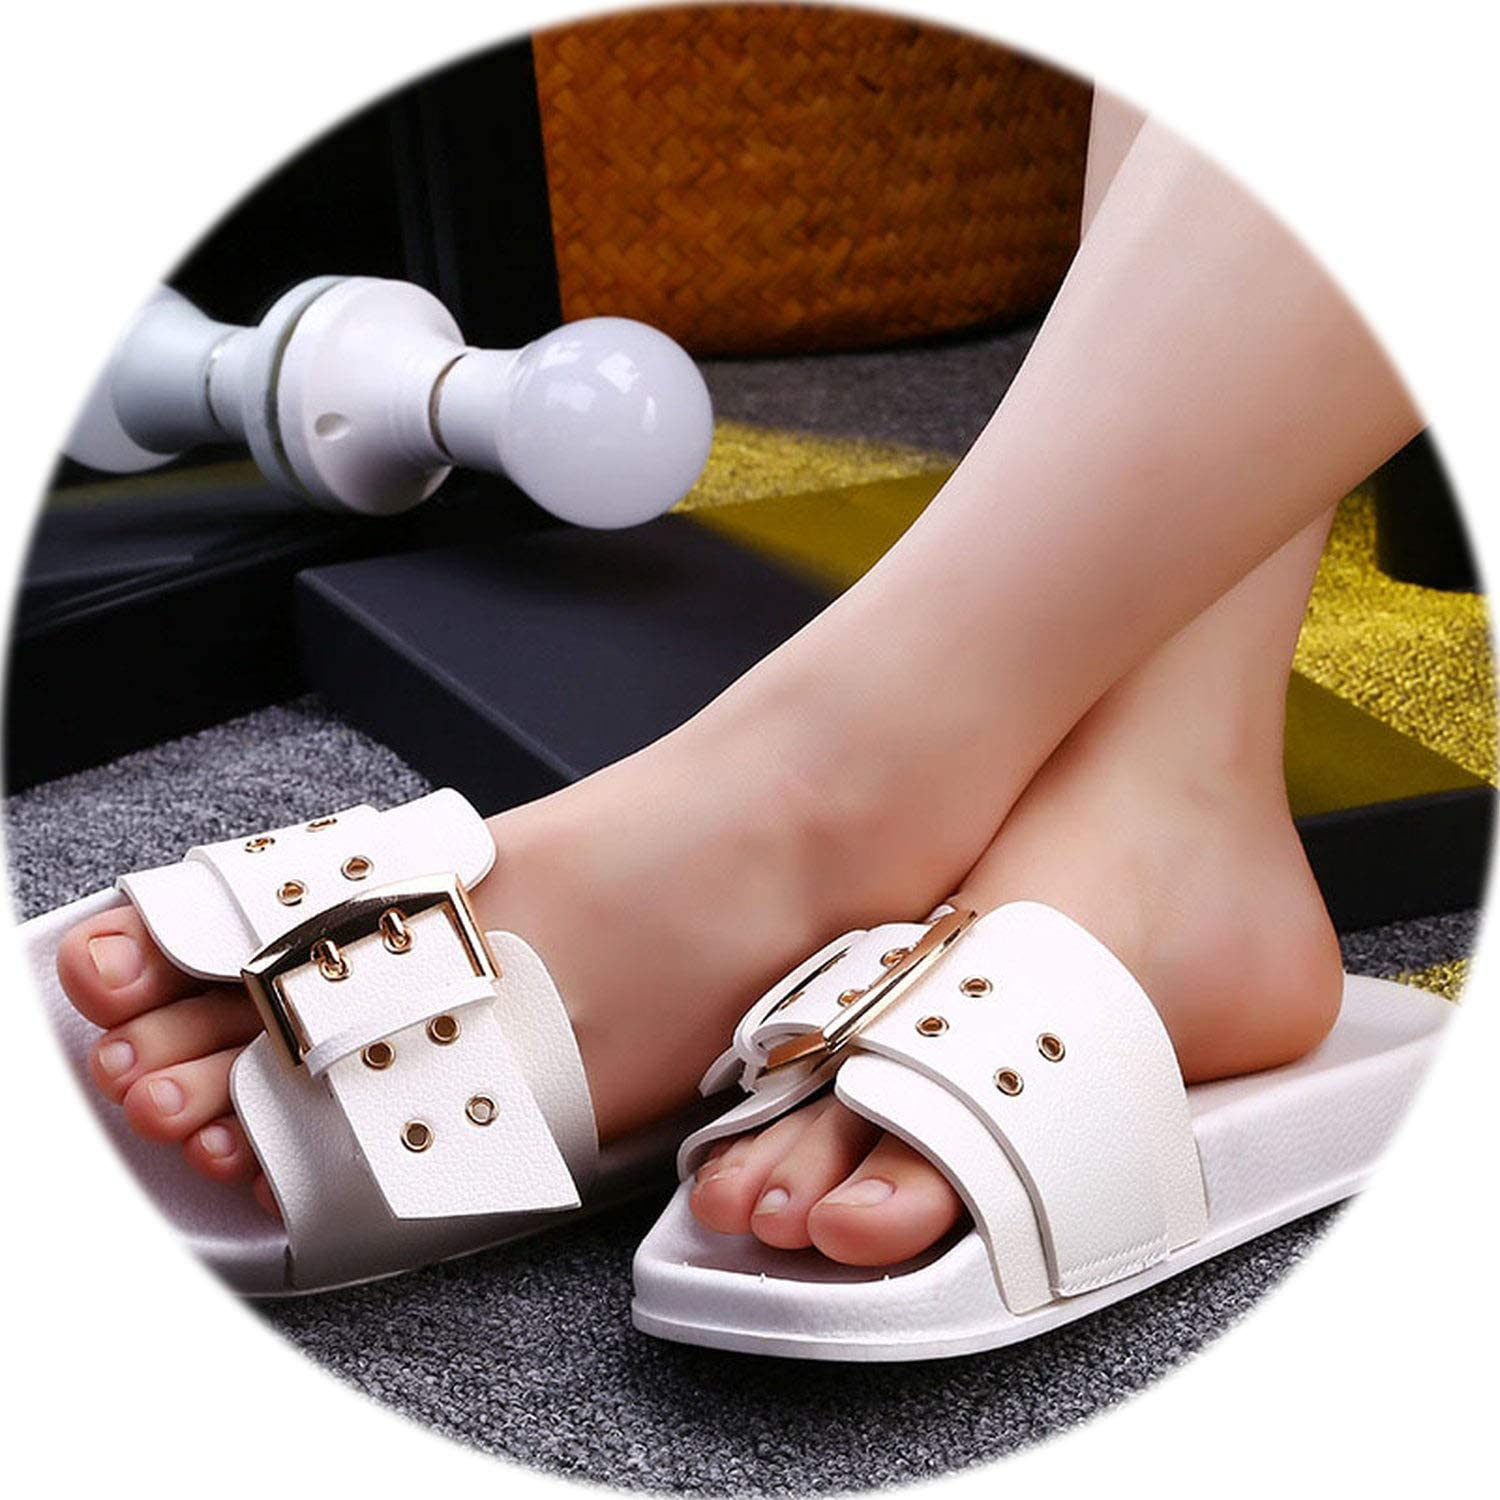 I'm good at you Women Slippers Brand Summer shoes Indoor Slippers PVC Thick Heel Woman Casual shoes,White shoes,9.5